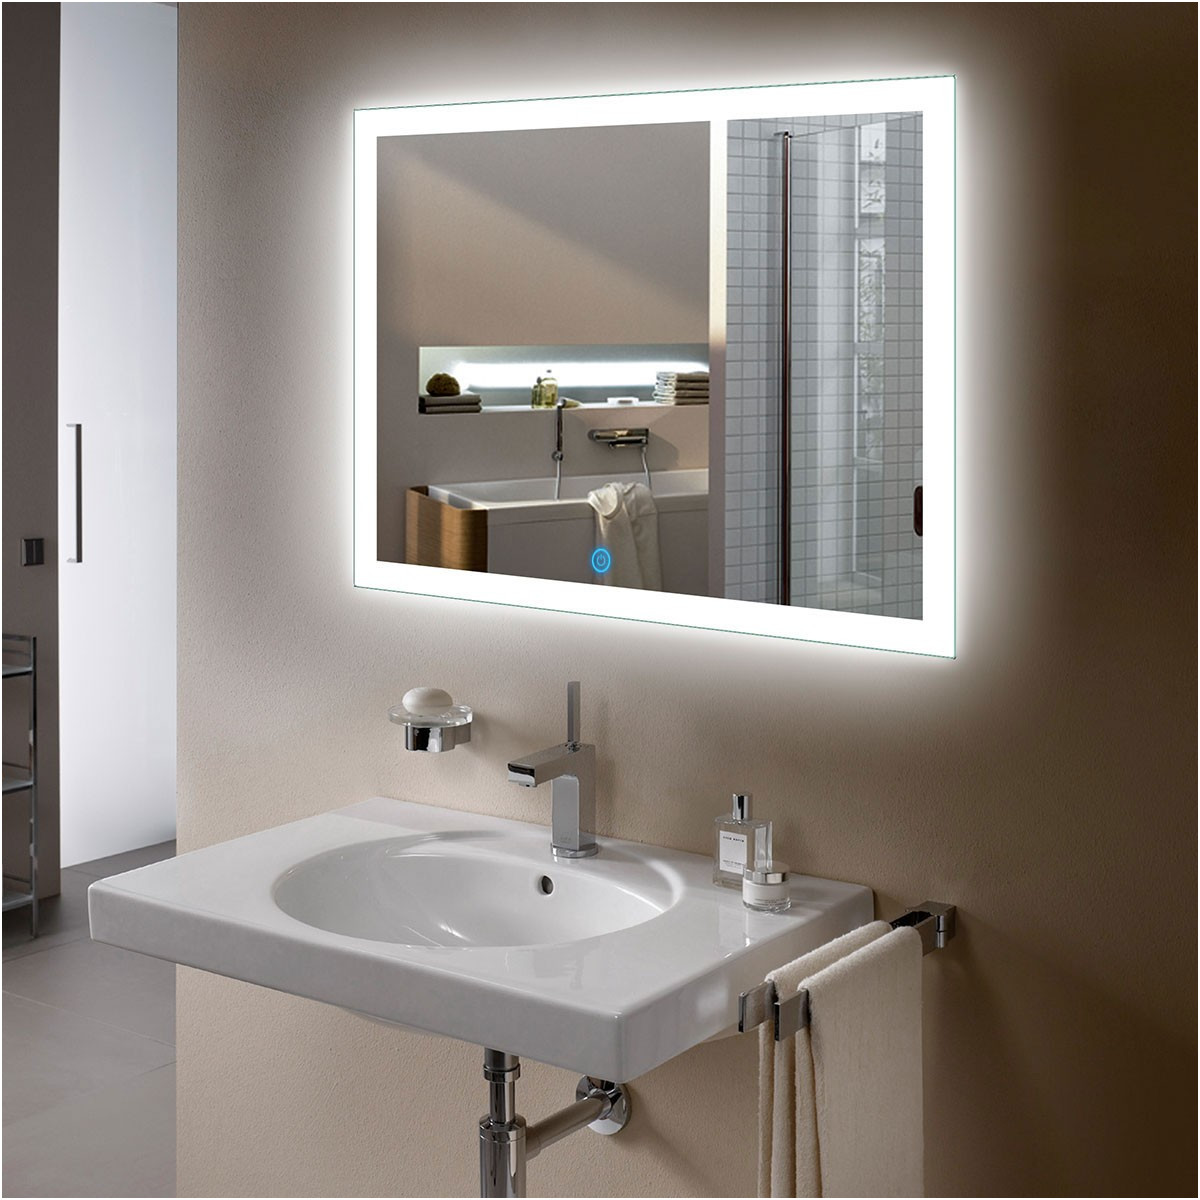 Inspirational Bathroom Mirror with Lights and Shelf